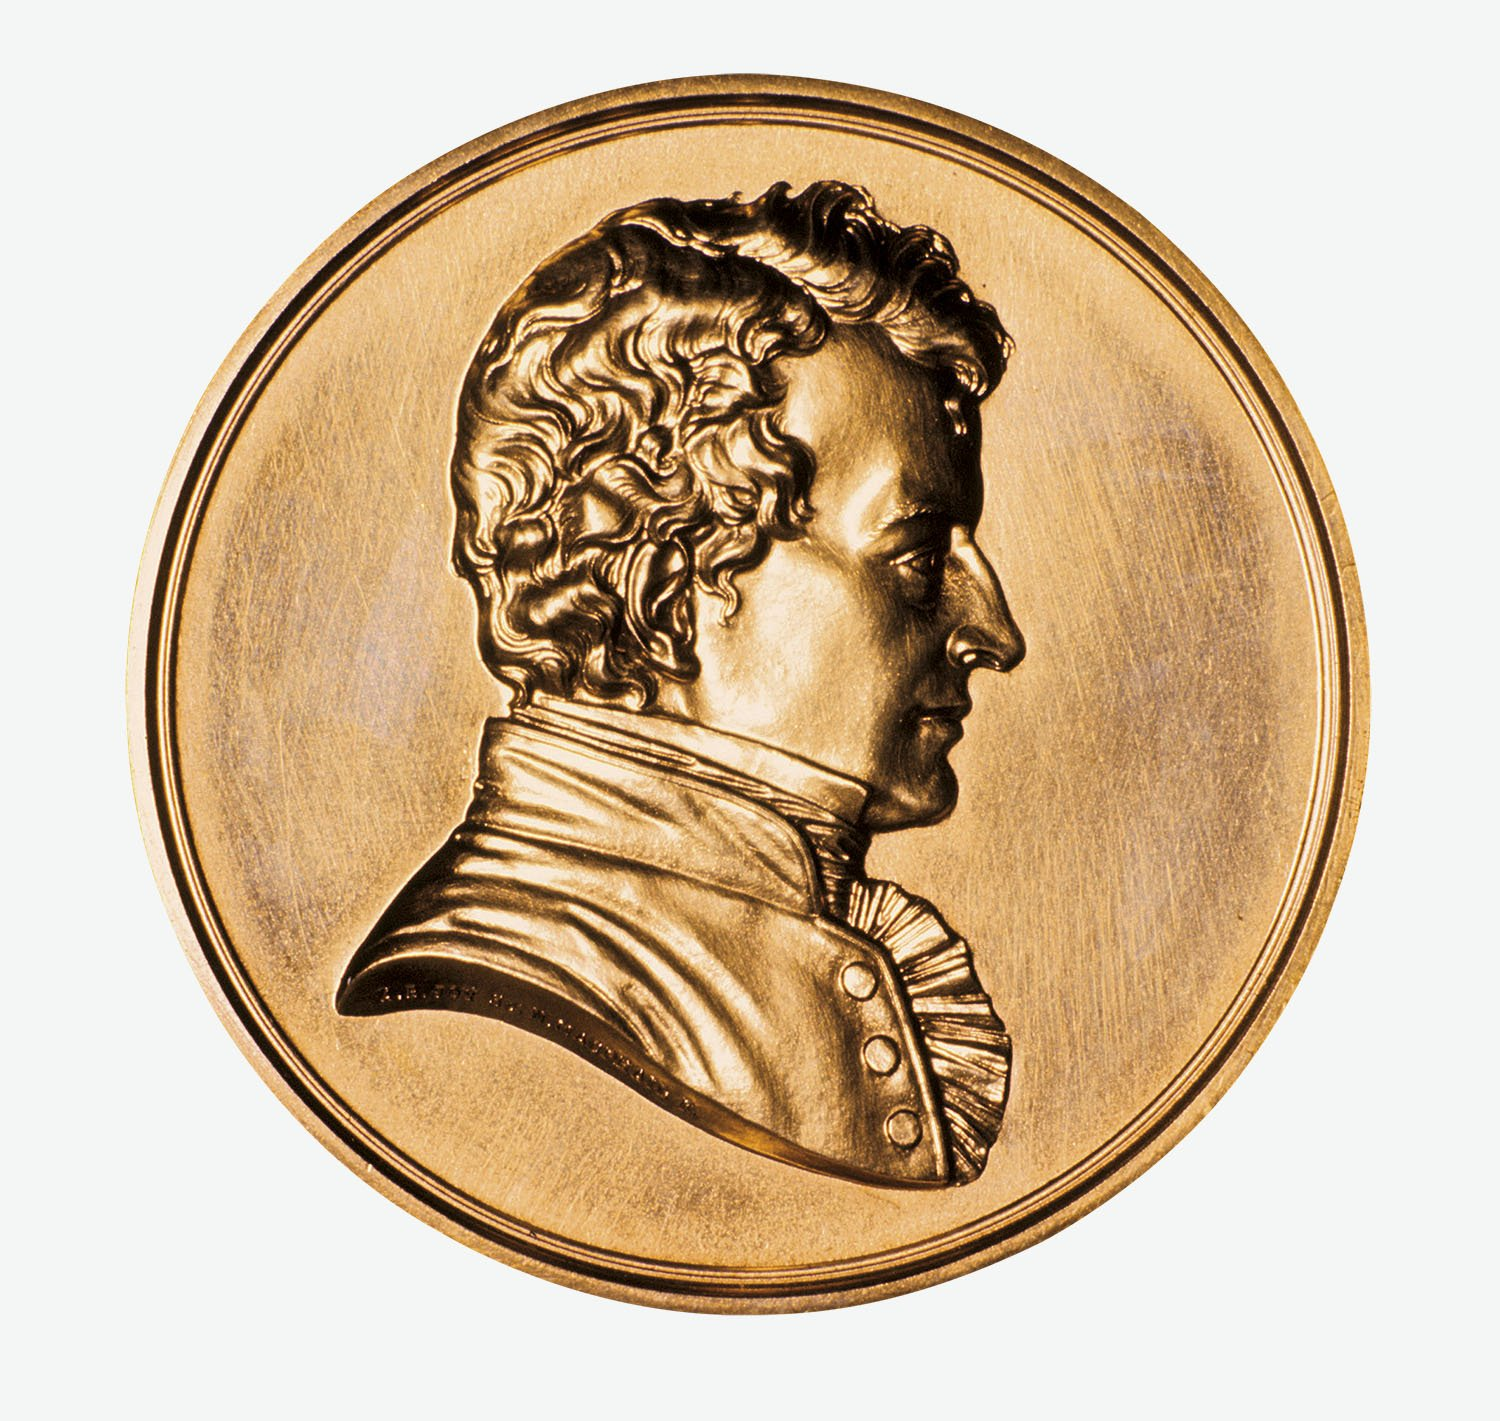 04 medalla imagen Humphry Davy. Humprhy Davy